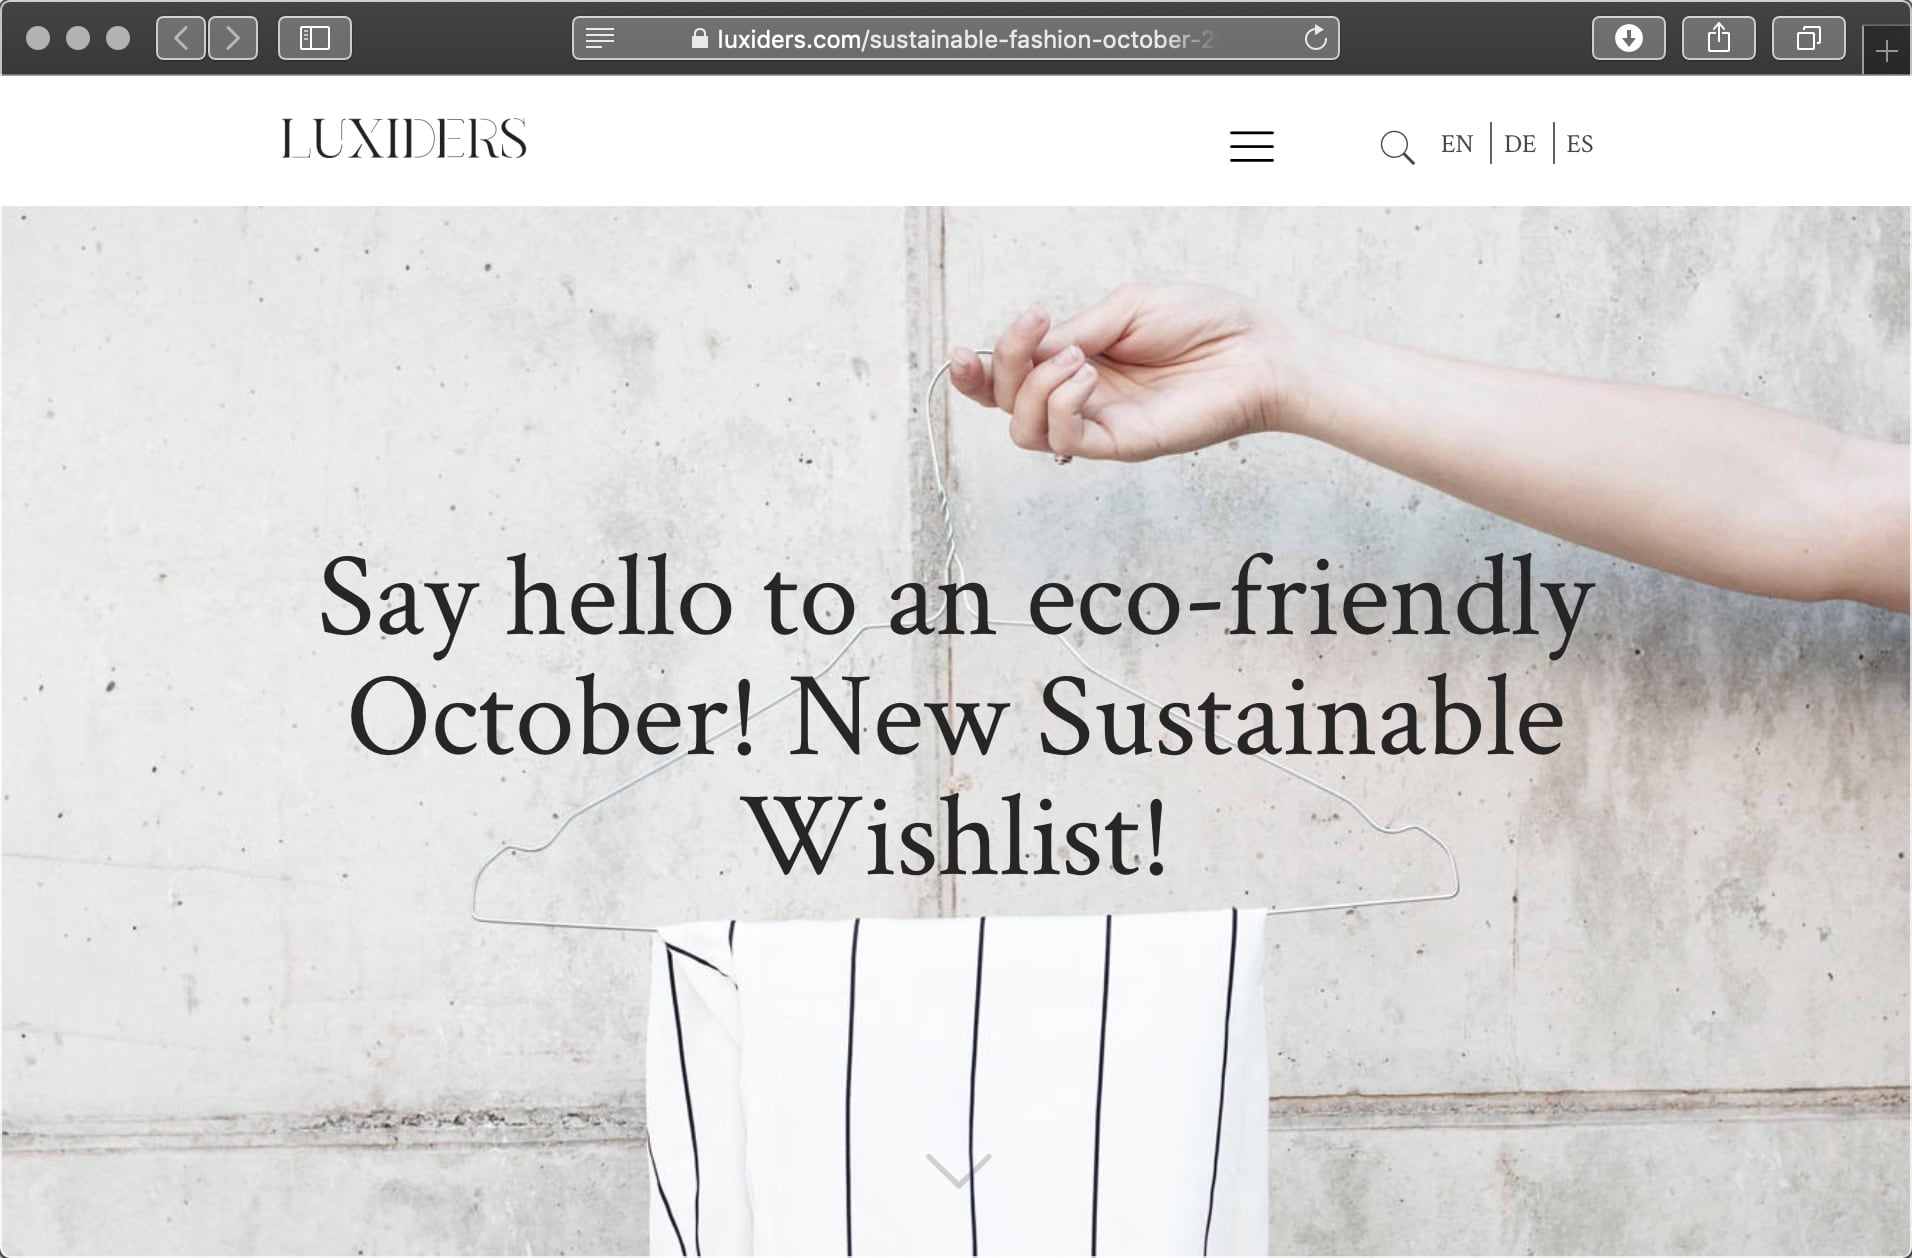 sustainable-fashion-say-hello-to-an-eco-friendly-october-luxiders-mag-2019-10-01-21-00-59.jpg